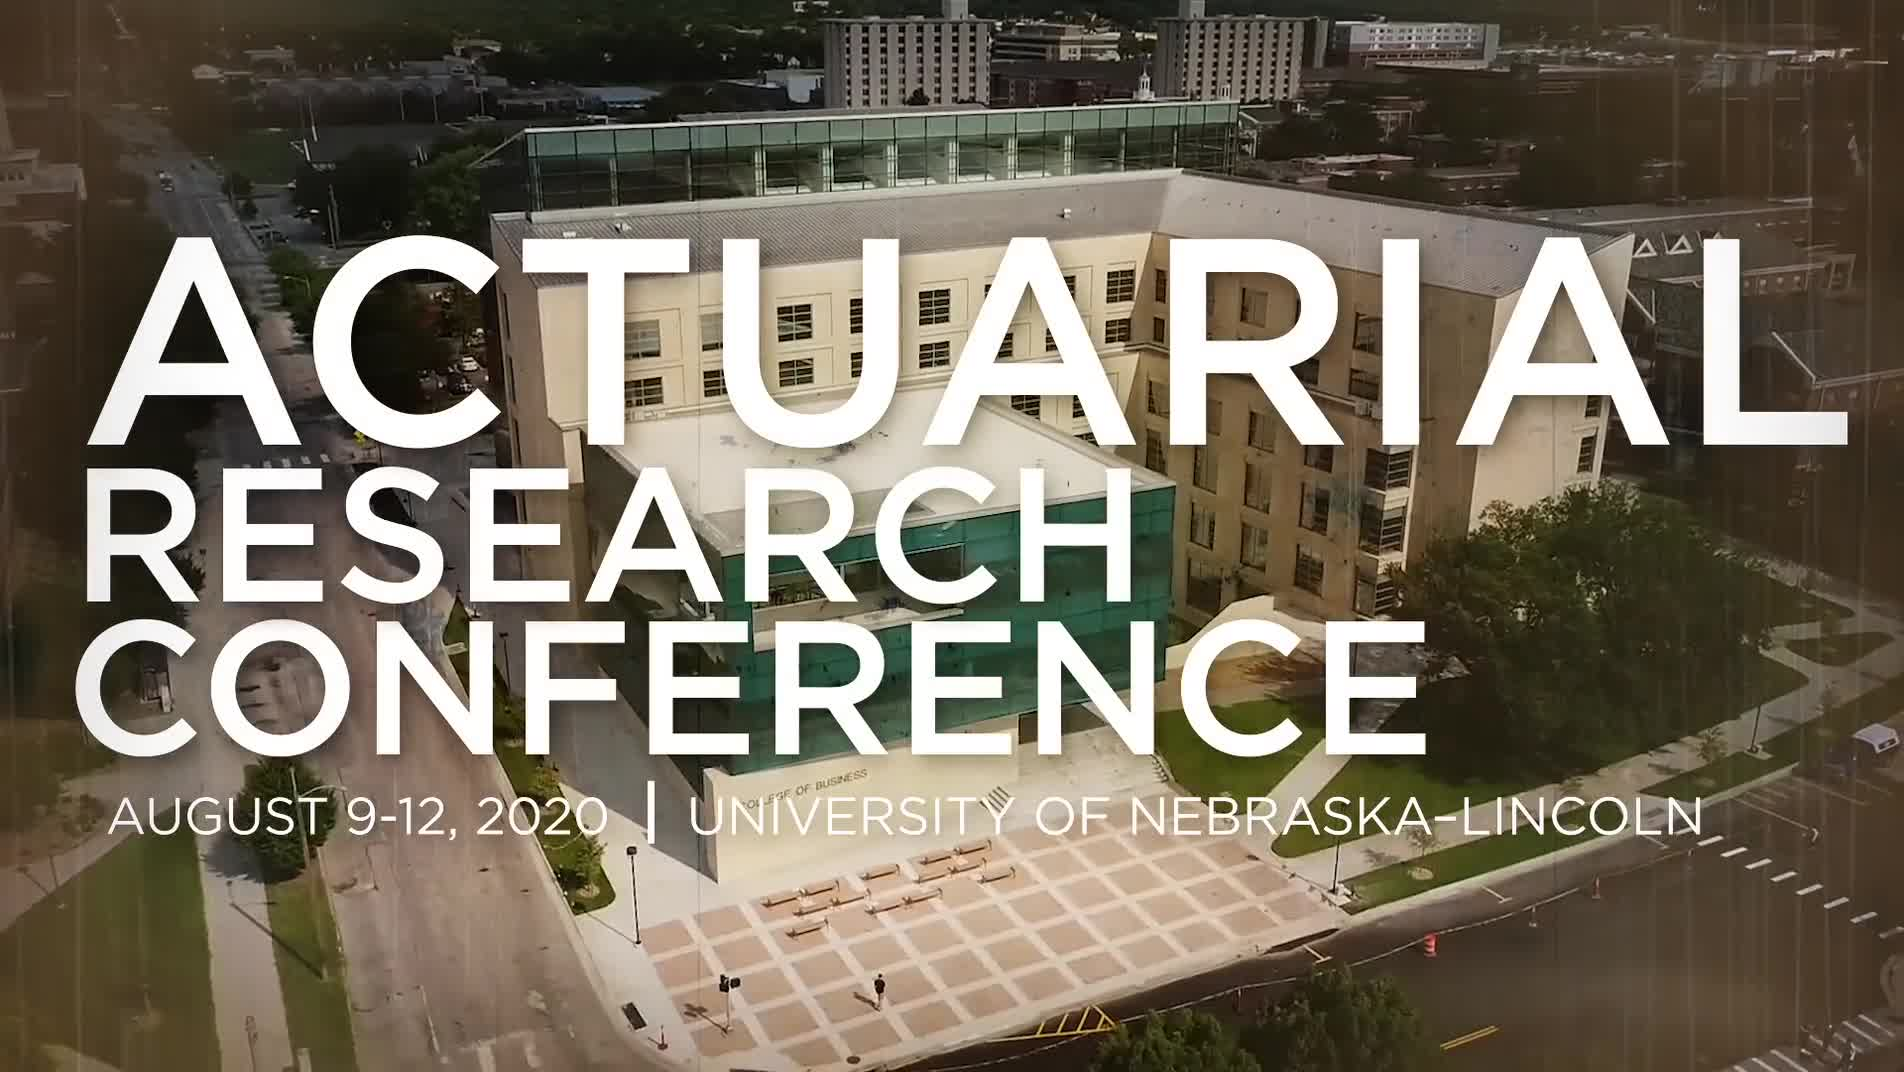 Actuarial Research Conference 2020 Hosted by University of Nebraska-Lincoln